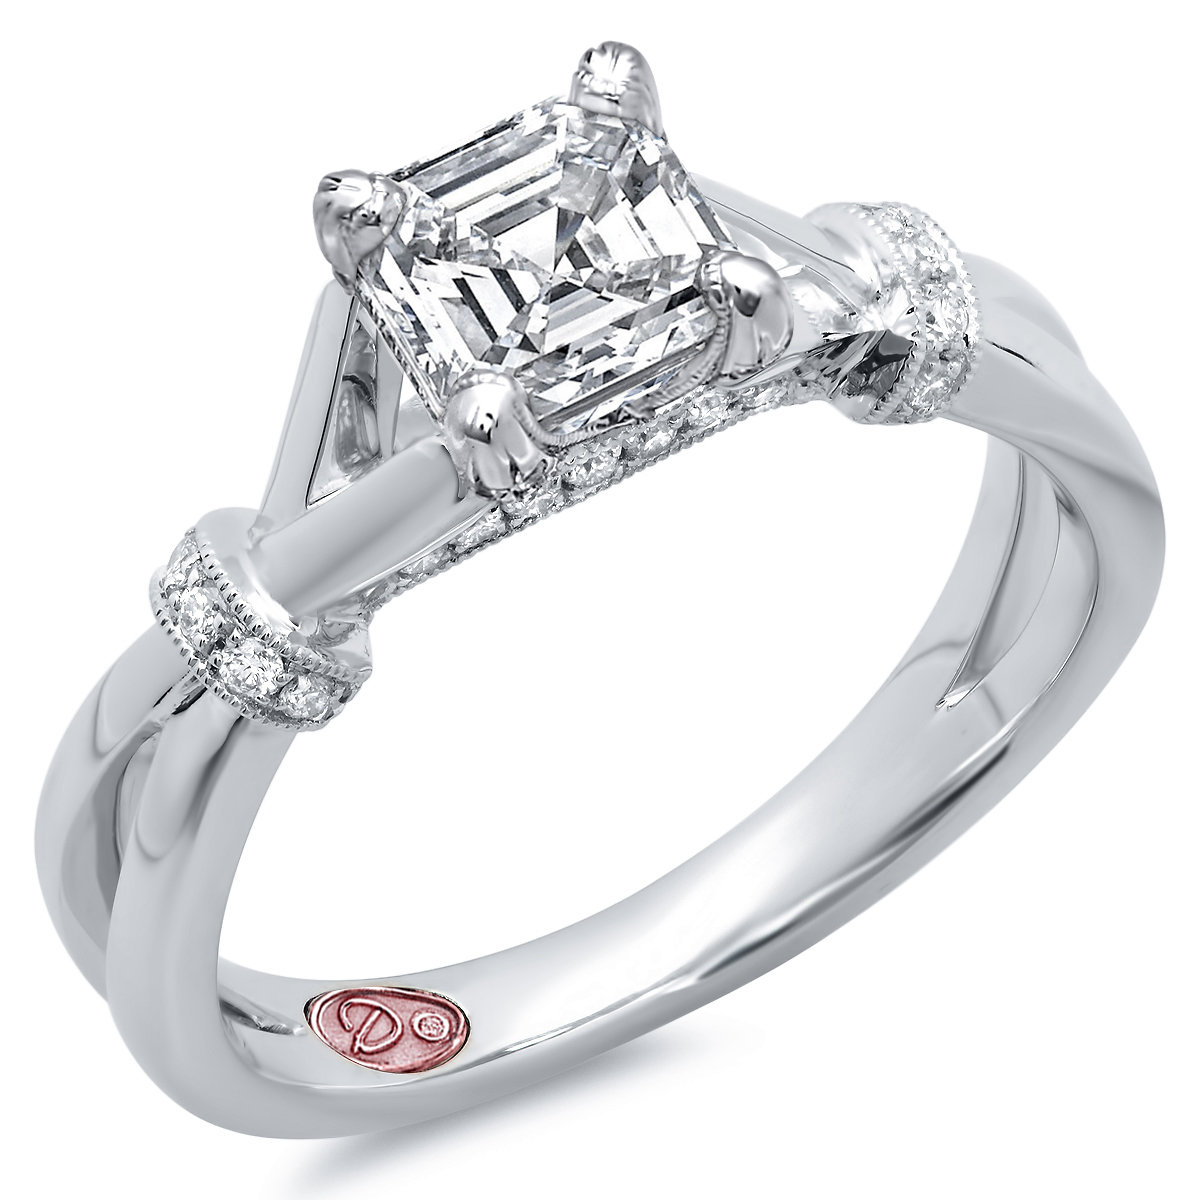 Designer Engagement Rings DW7614